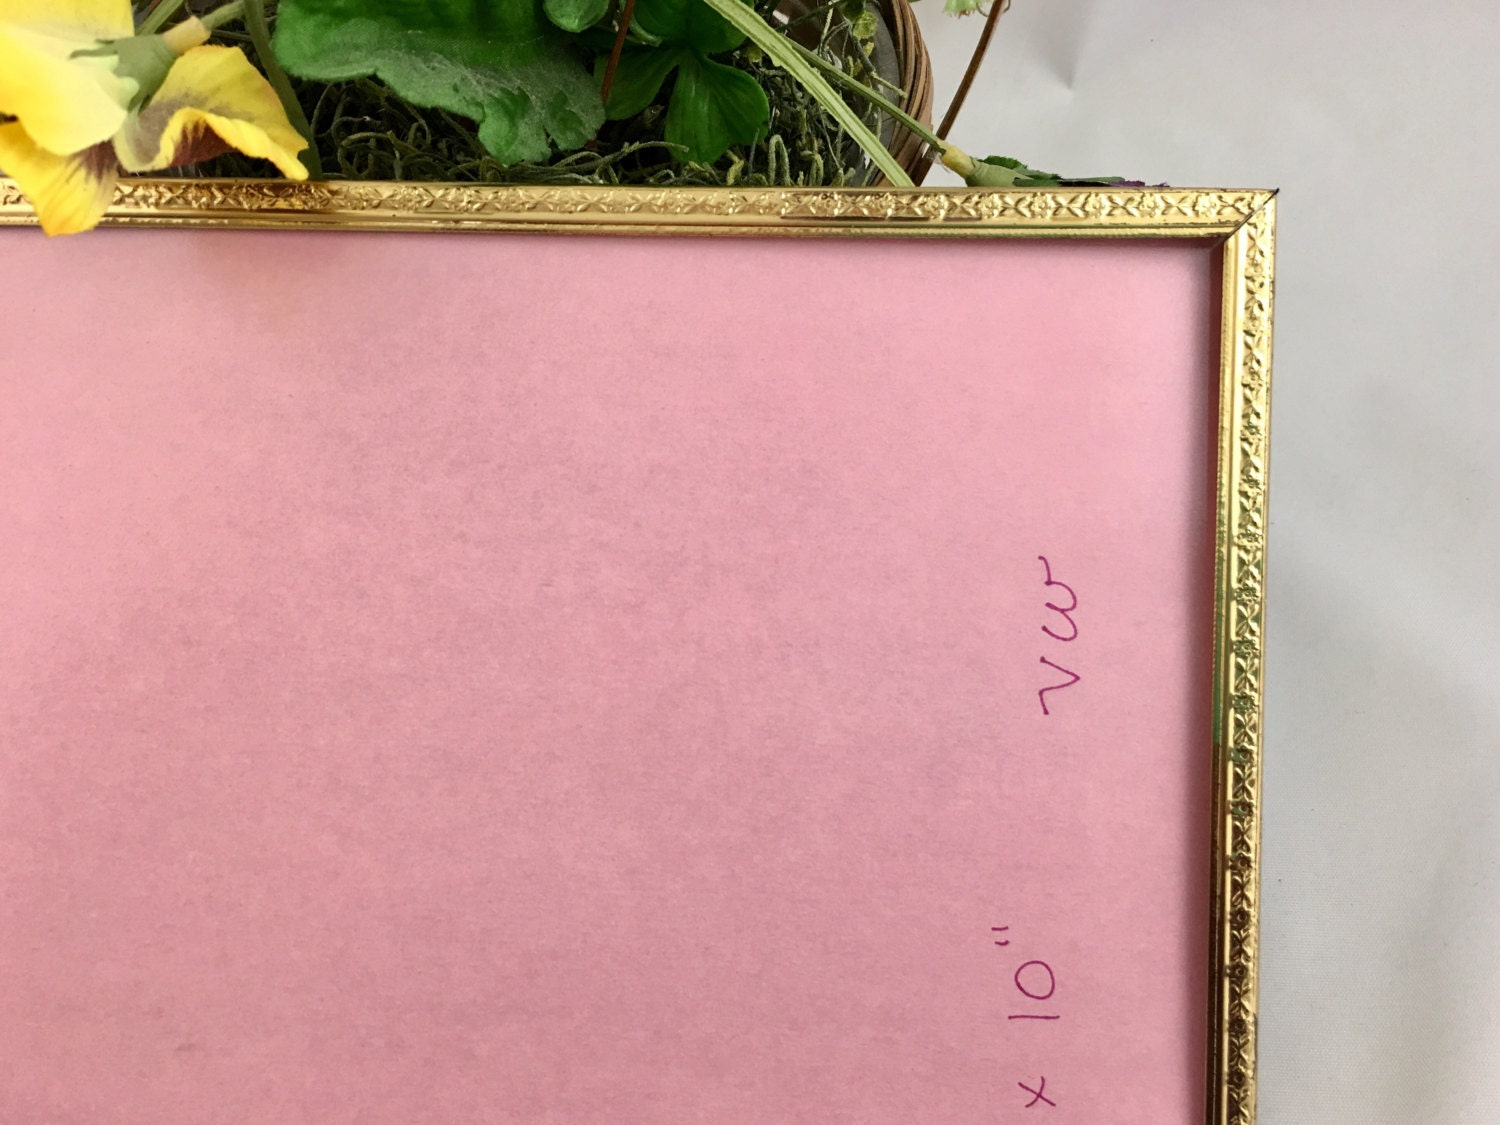 Vintage 8x10 embossed ornate gold metal picture frame photo frame sold by loftatticearth jeuxipadfo Image collections